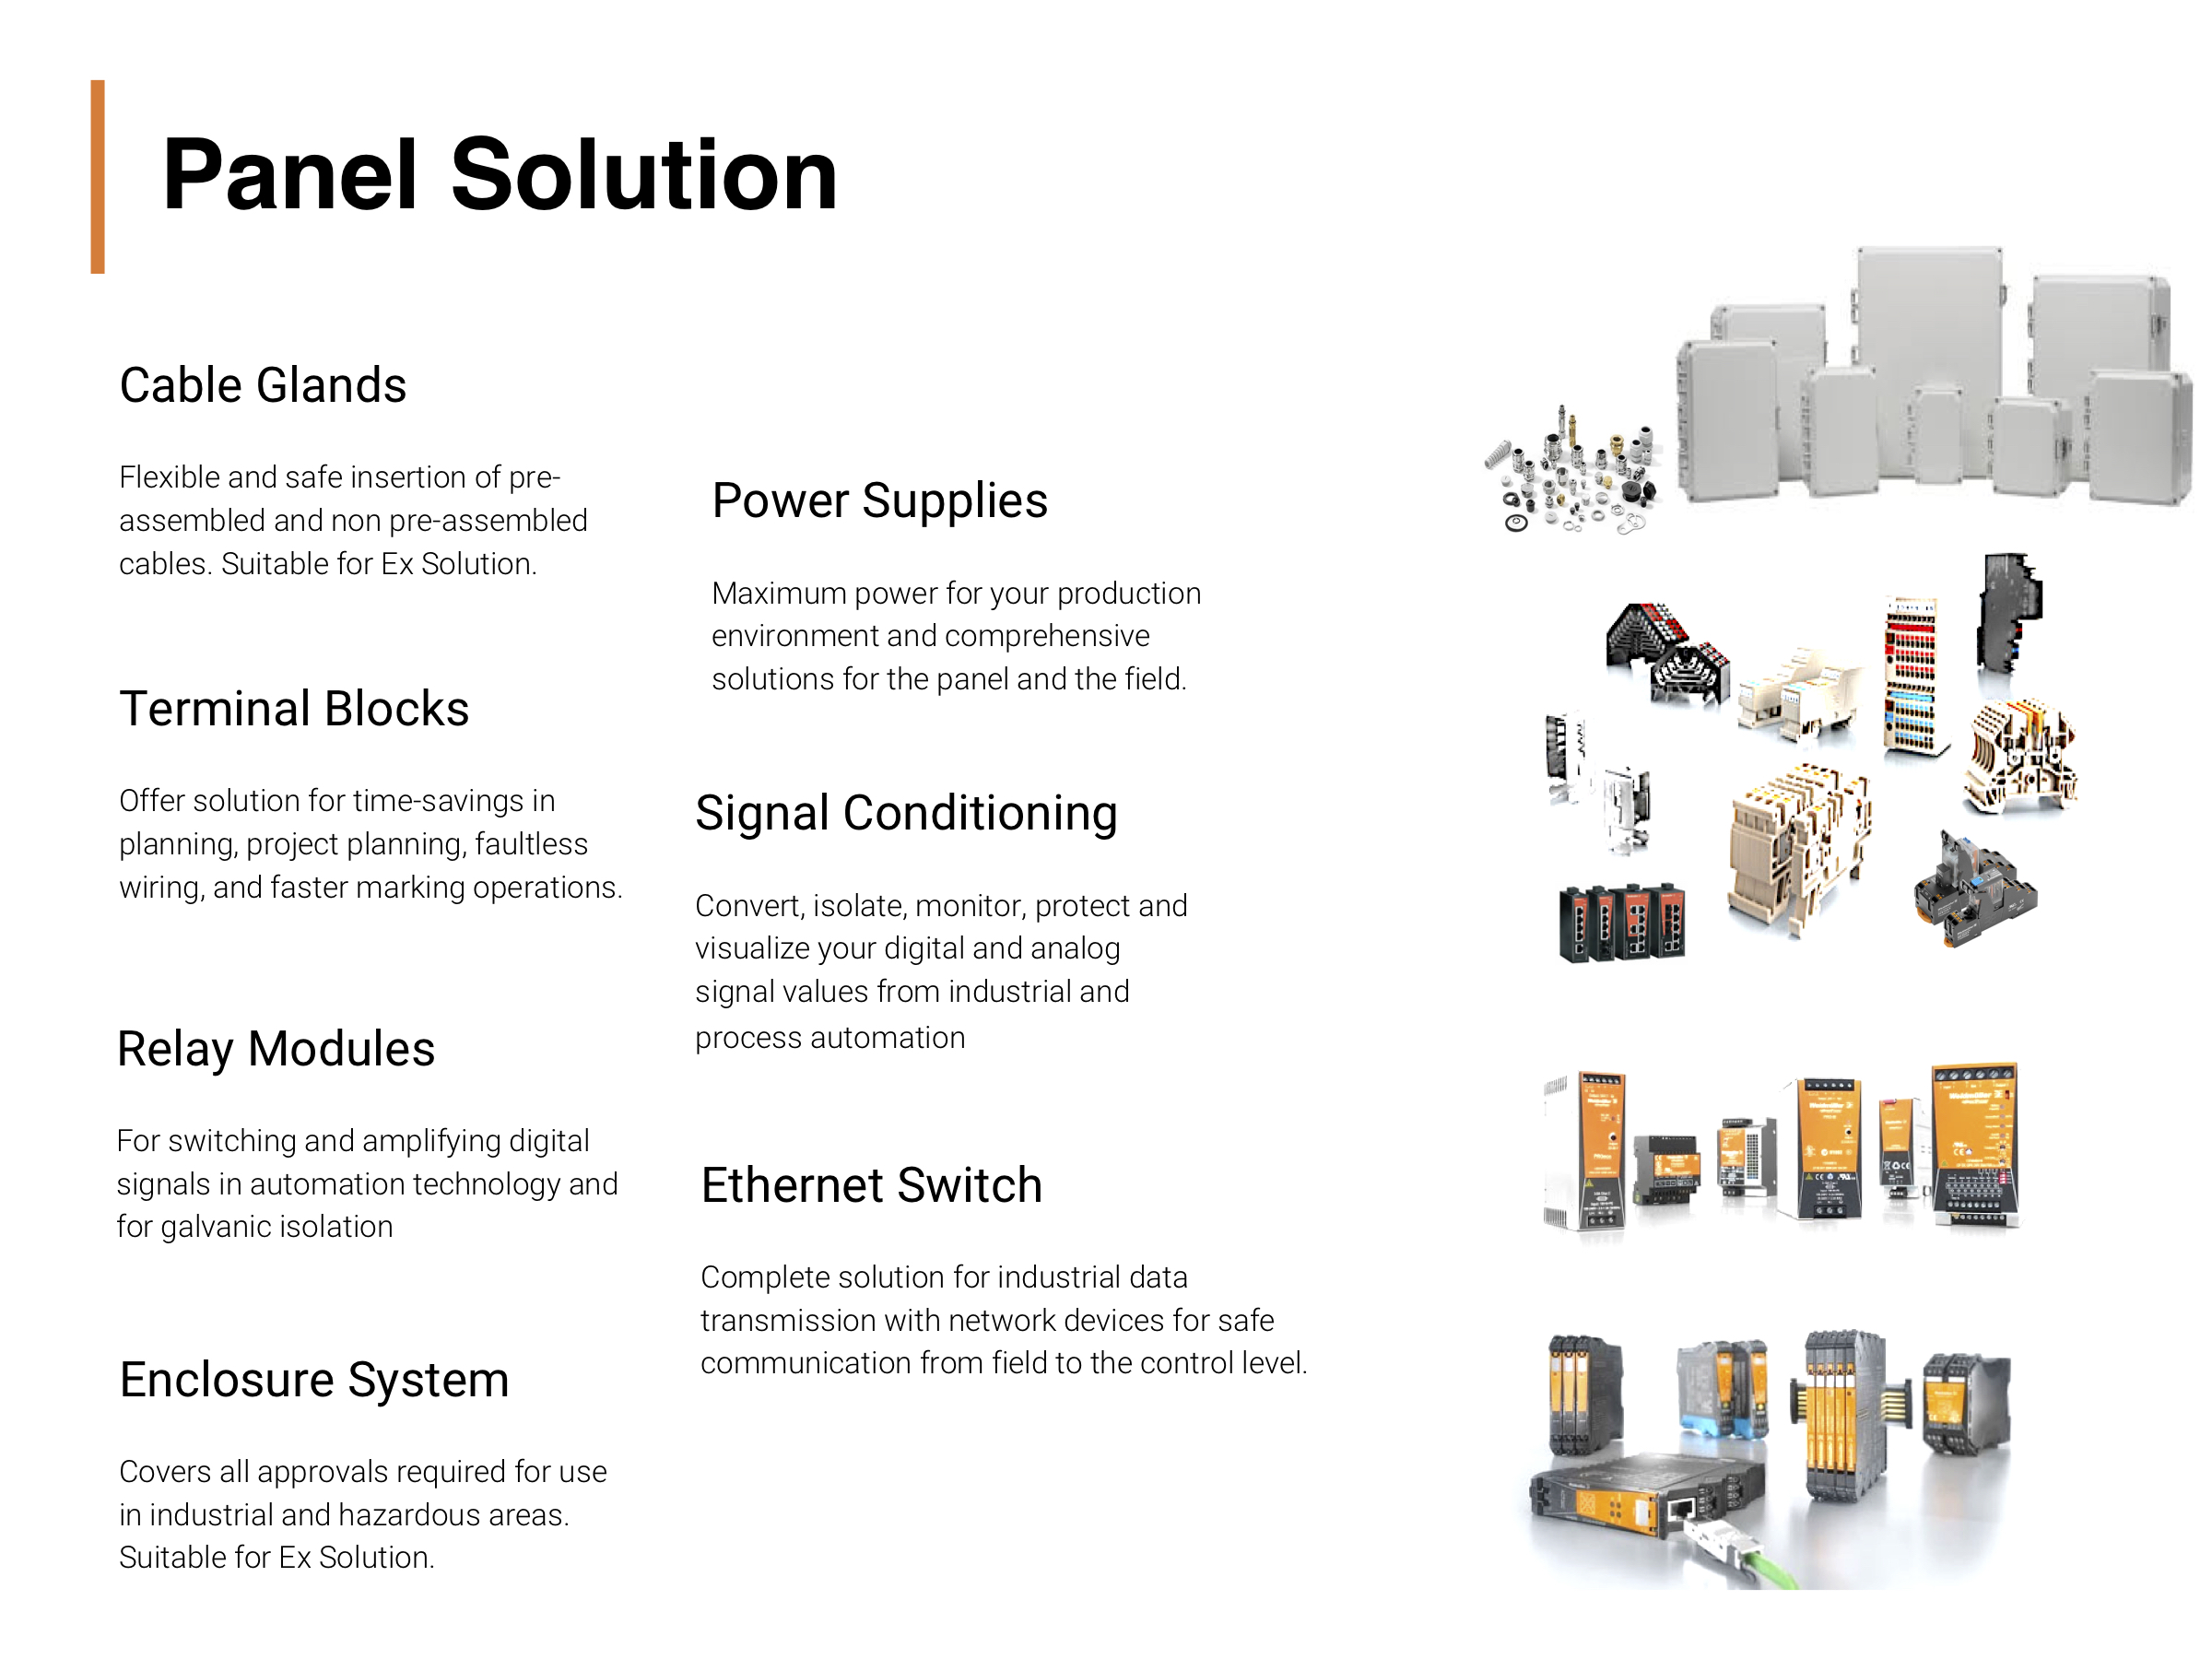 paddi have weidmuller panel solution product